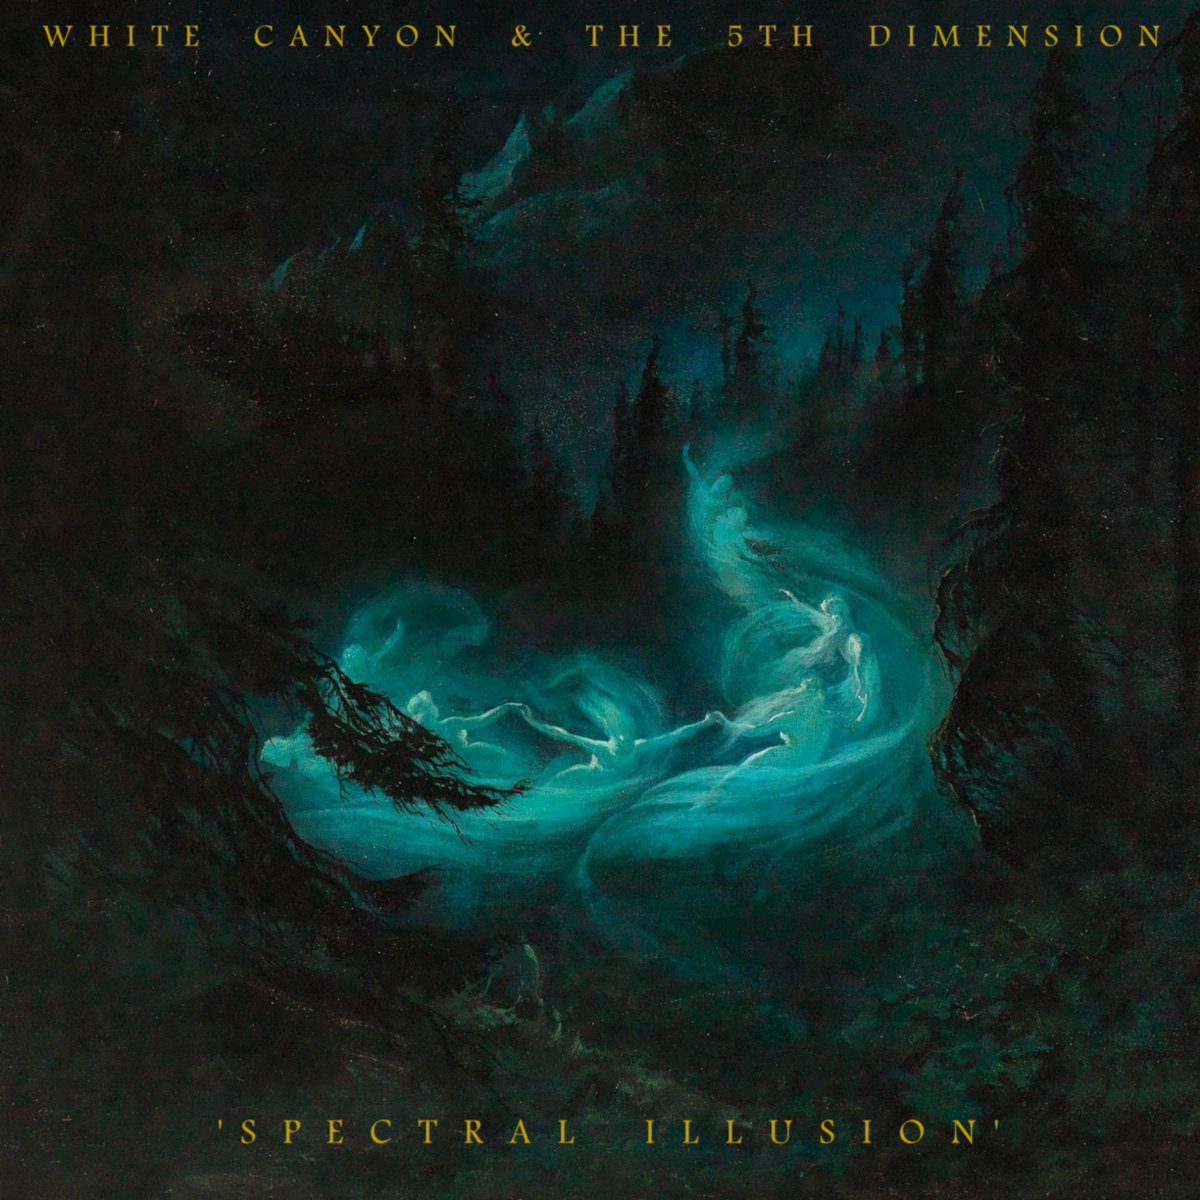 White Canyon & The 5th dimension - Spectral Illusion